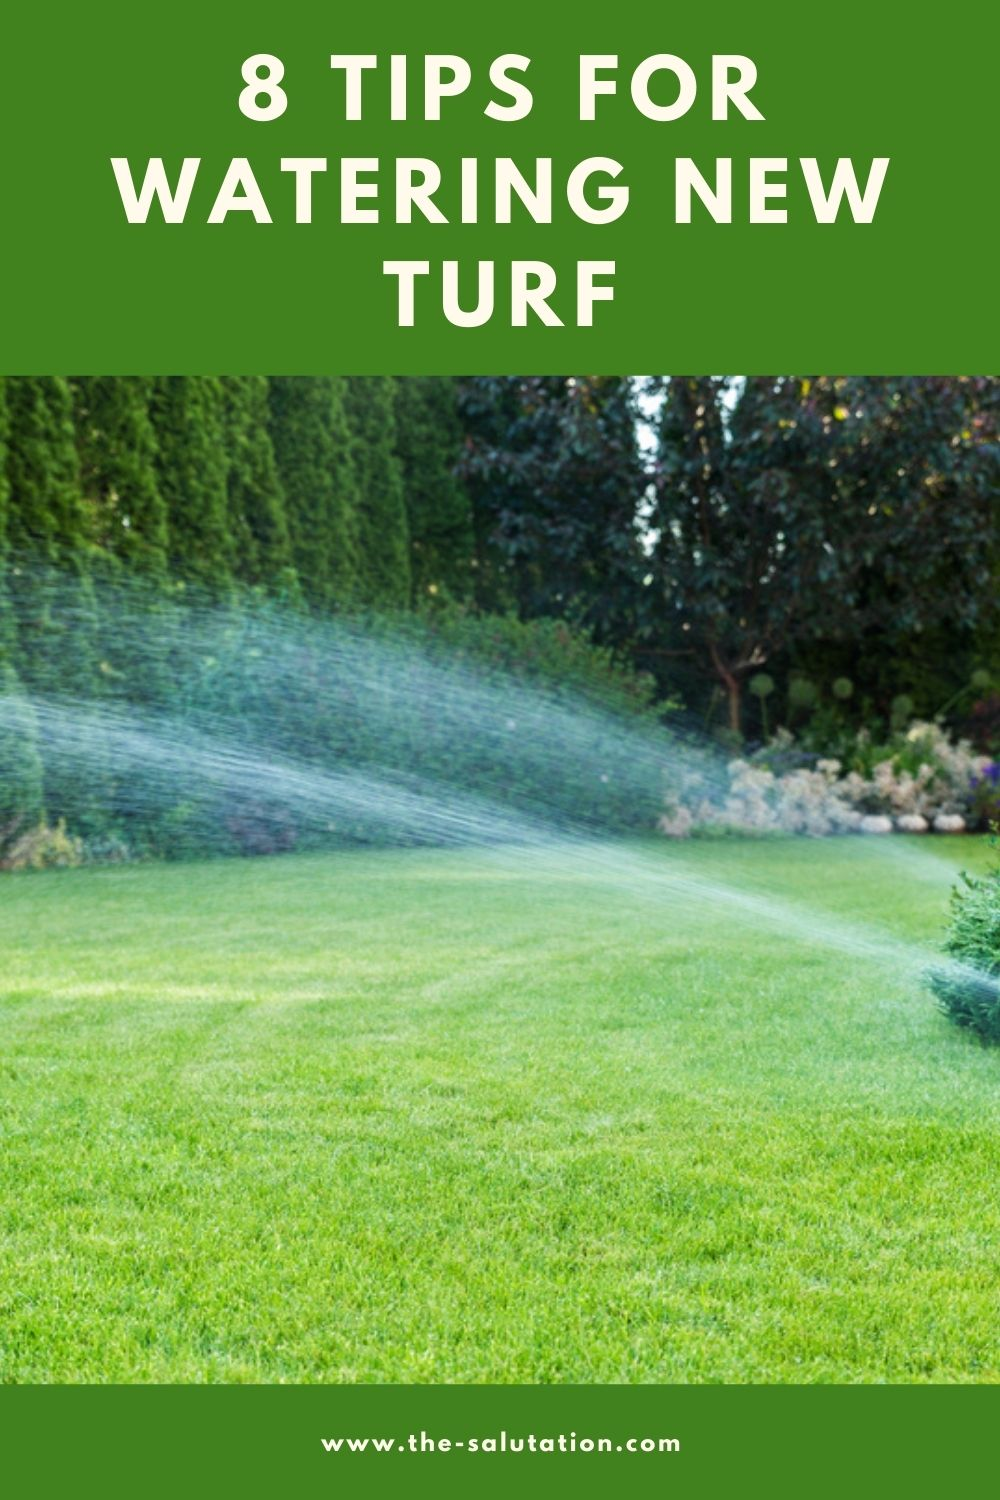 8 Tips for Watering New Turf 2